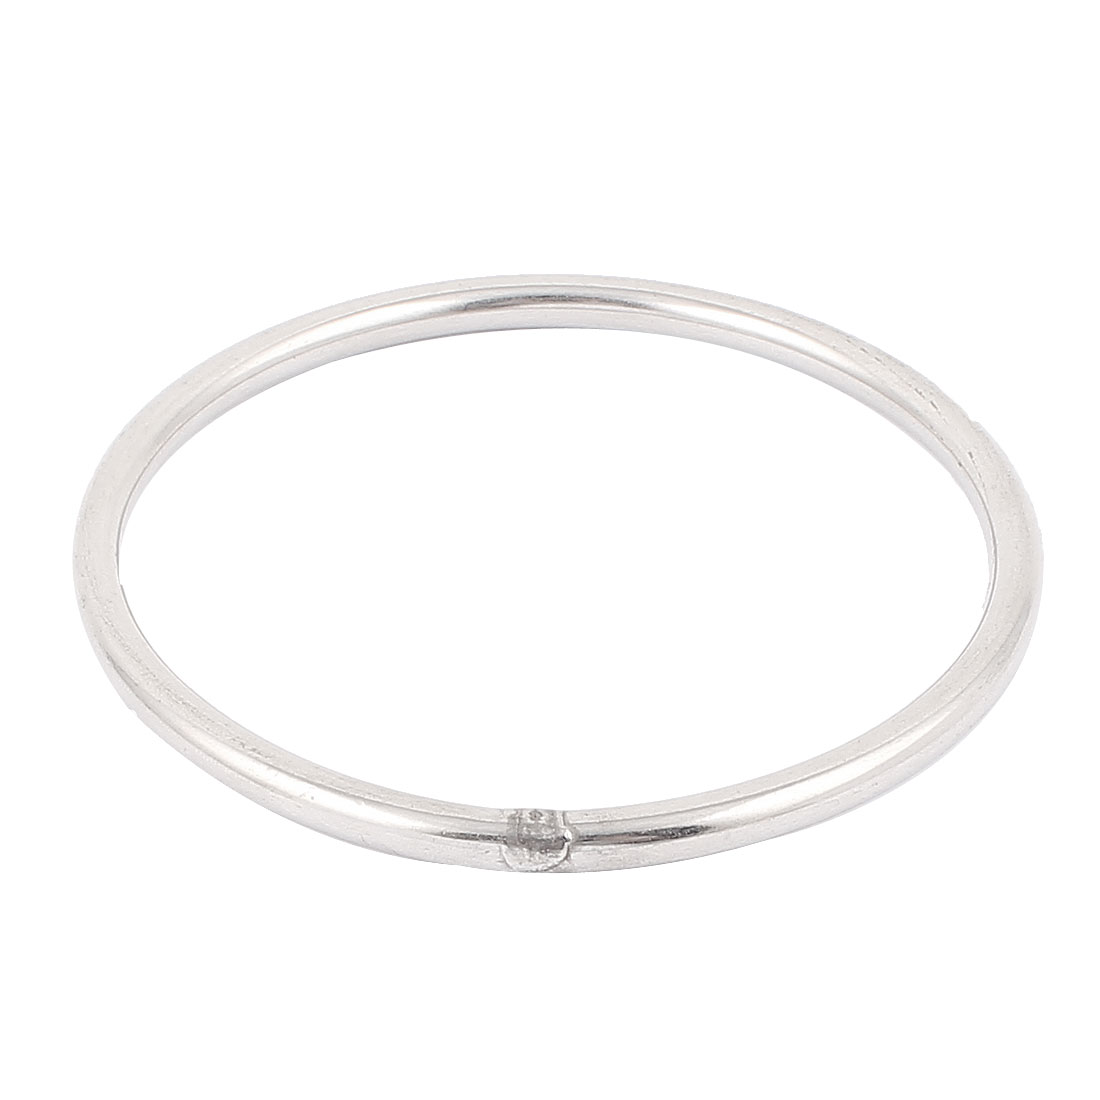 M6x100mm 304 Stainless Steel Welded Round Ring Silver Tone